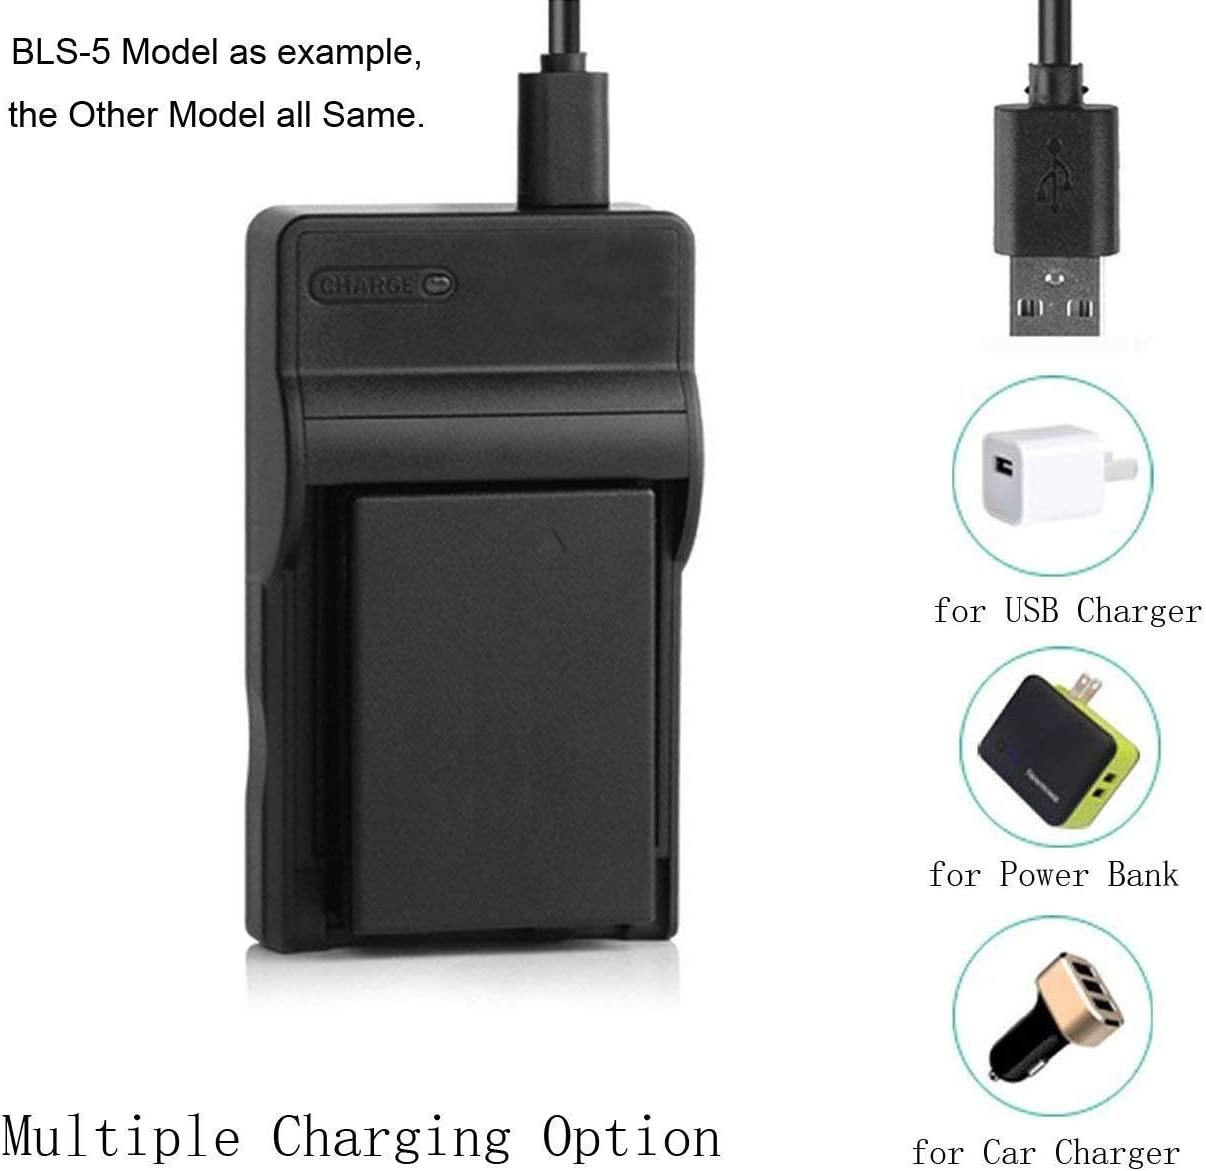 GZ-MG37AG Battery Charger for JVC Everio GZ-MG37AA GZ-MG37AH GZ-MG37AS Digital Camcorder